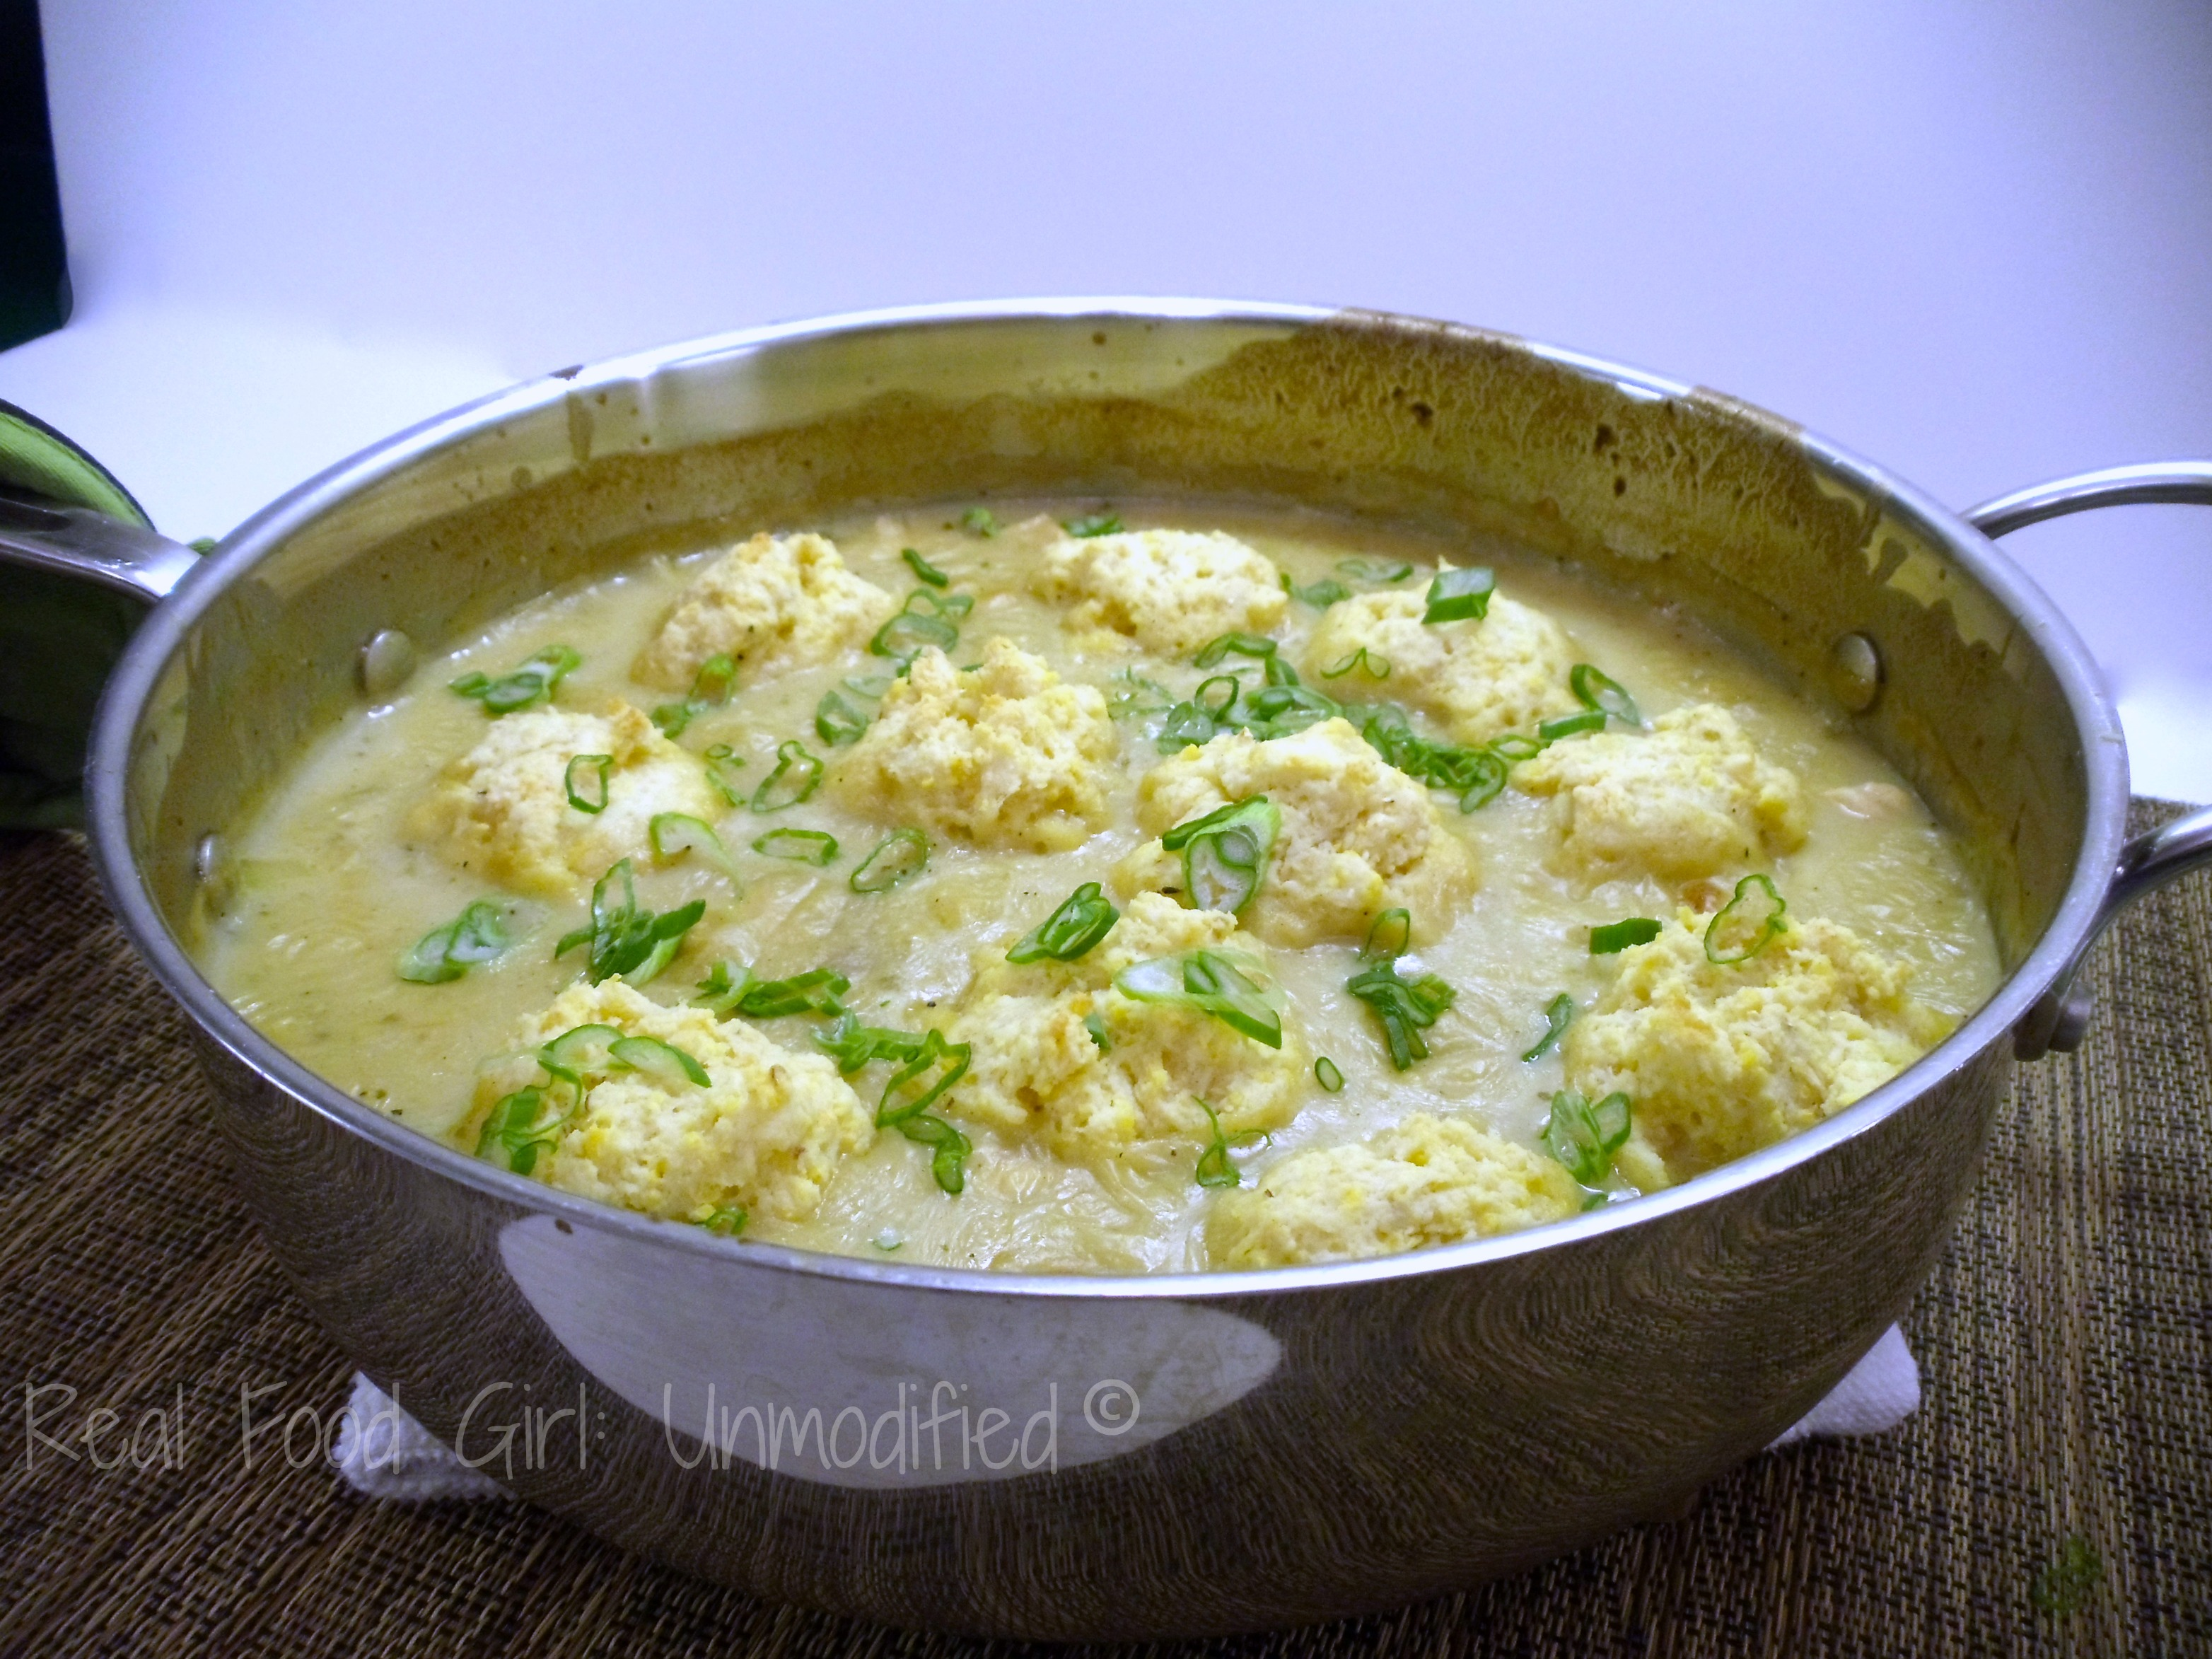 One pot wondererful! Chicken Salsa Verde with Cornbread Dumplings. This is GMO-Free/Organic comfort food done right. Real Food Girl: Unmodified.